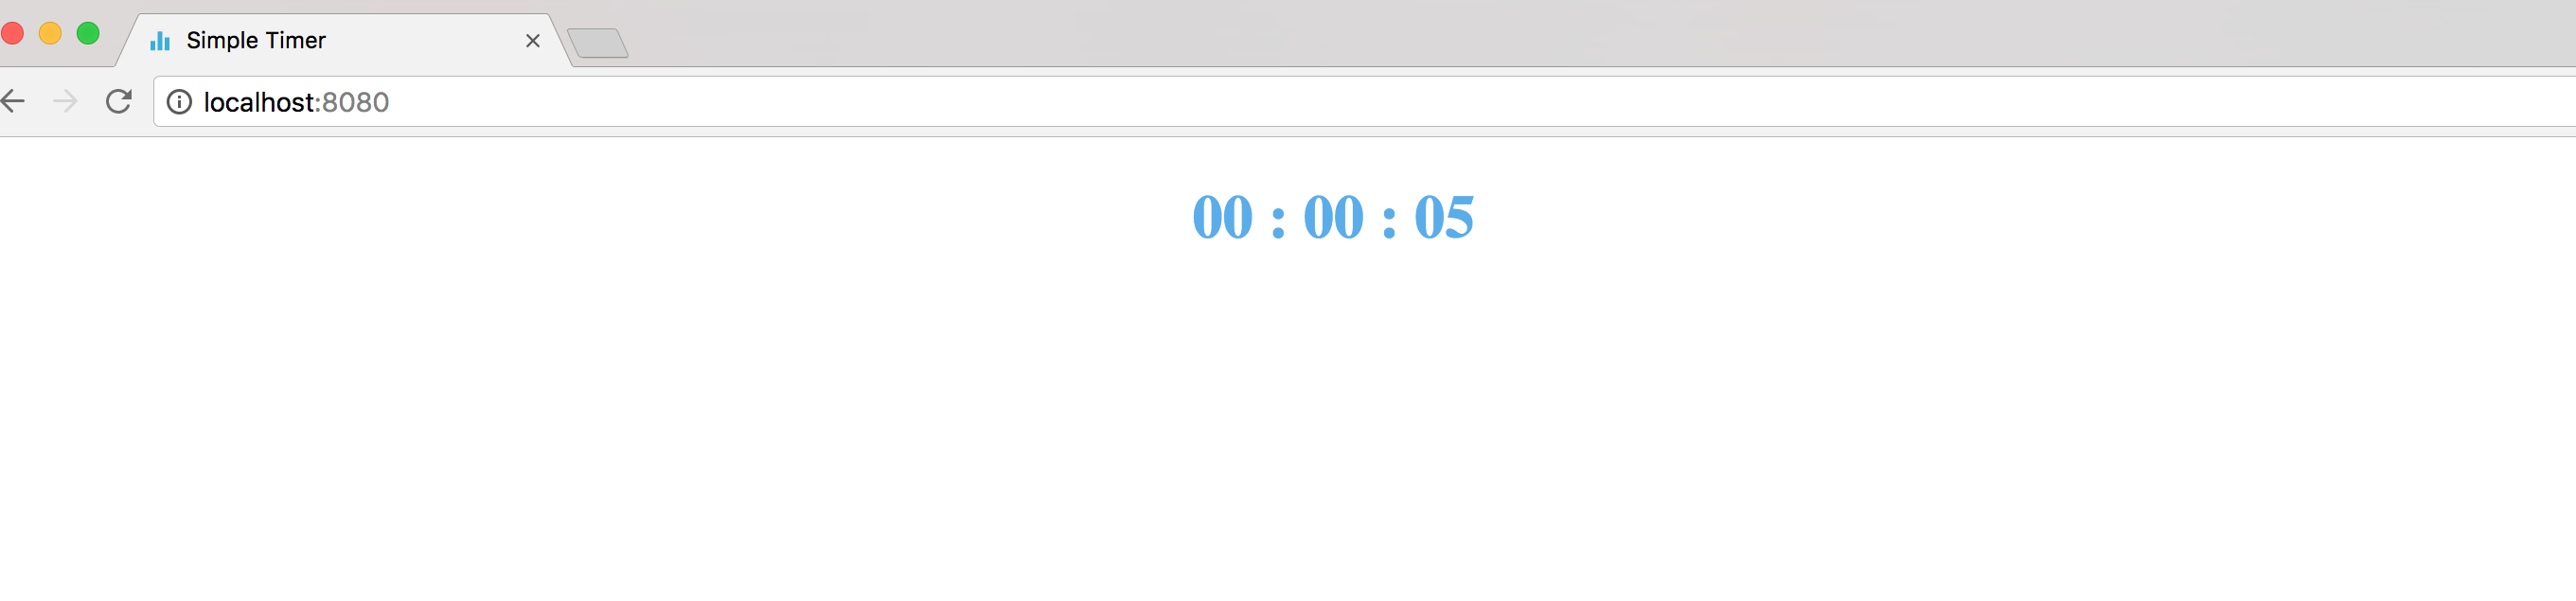 10+ Angular 2 Timers Countdowns Clocks | AngularJS 4U